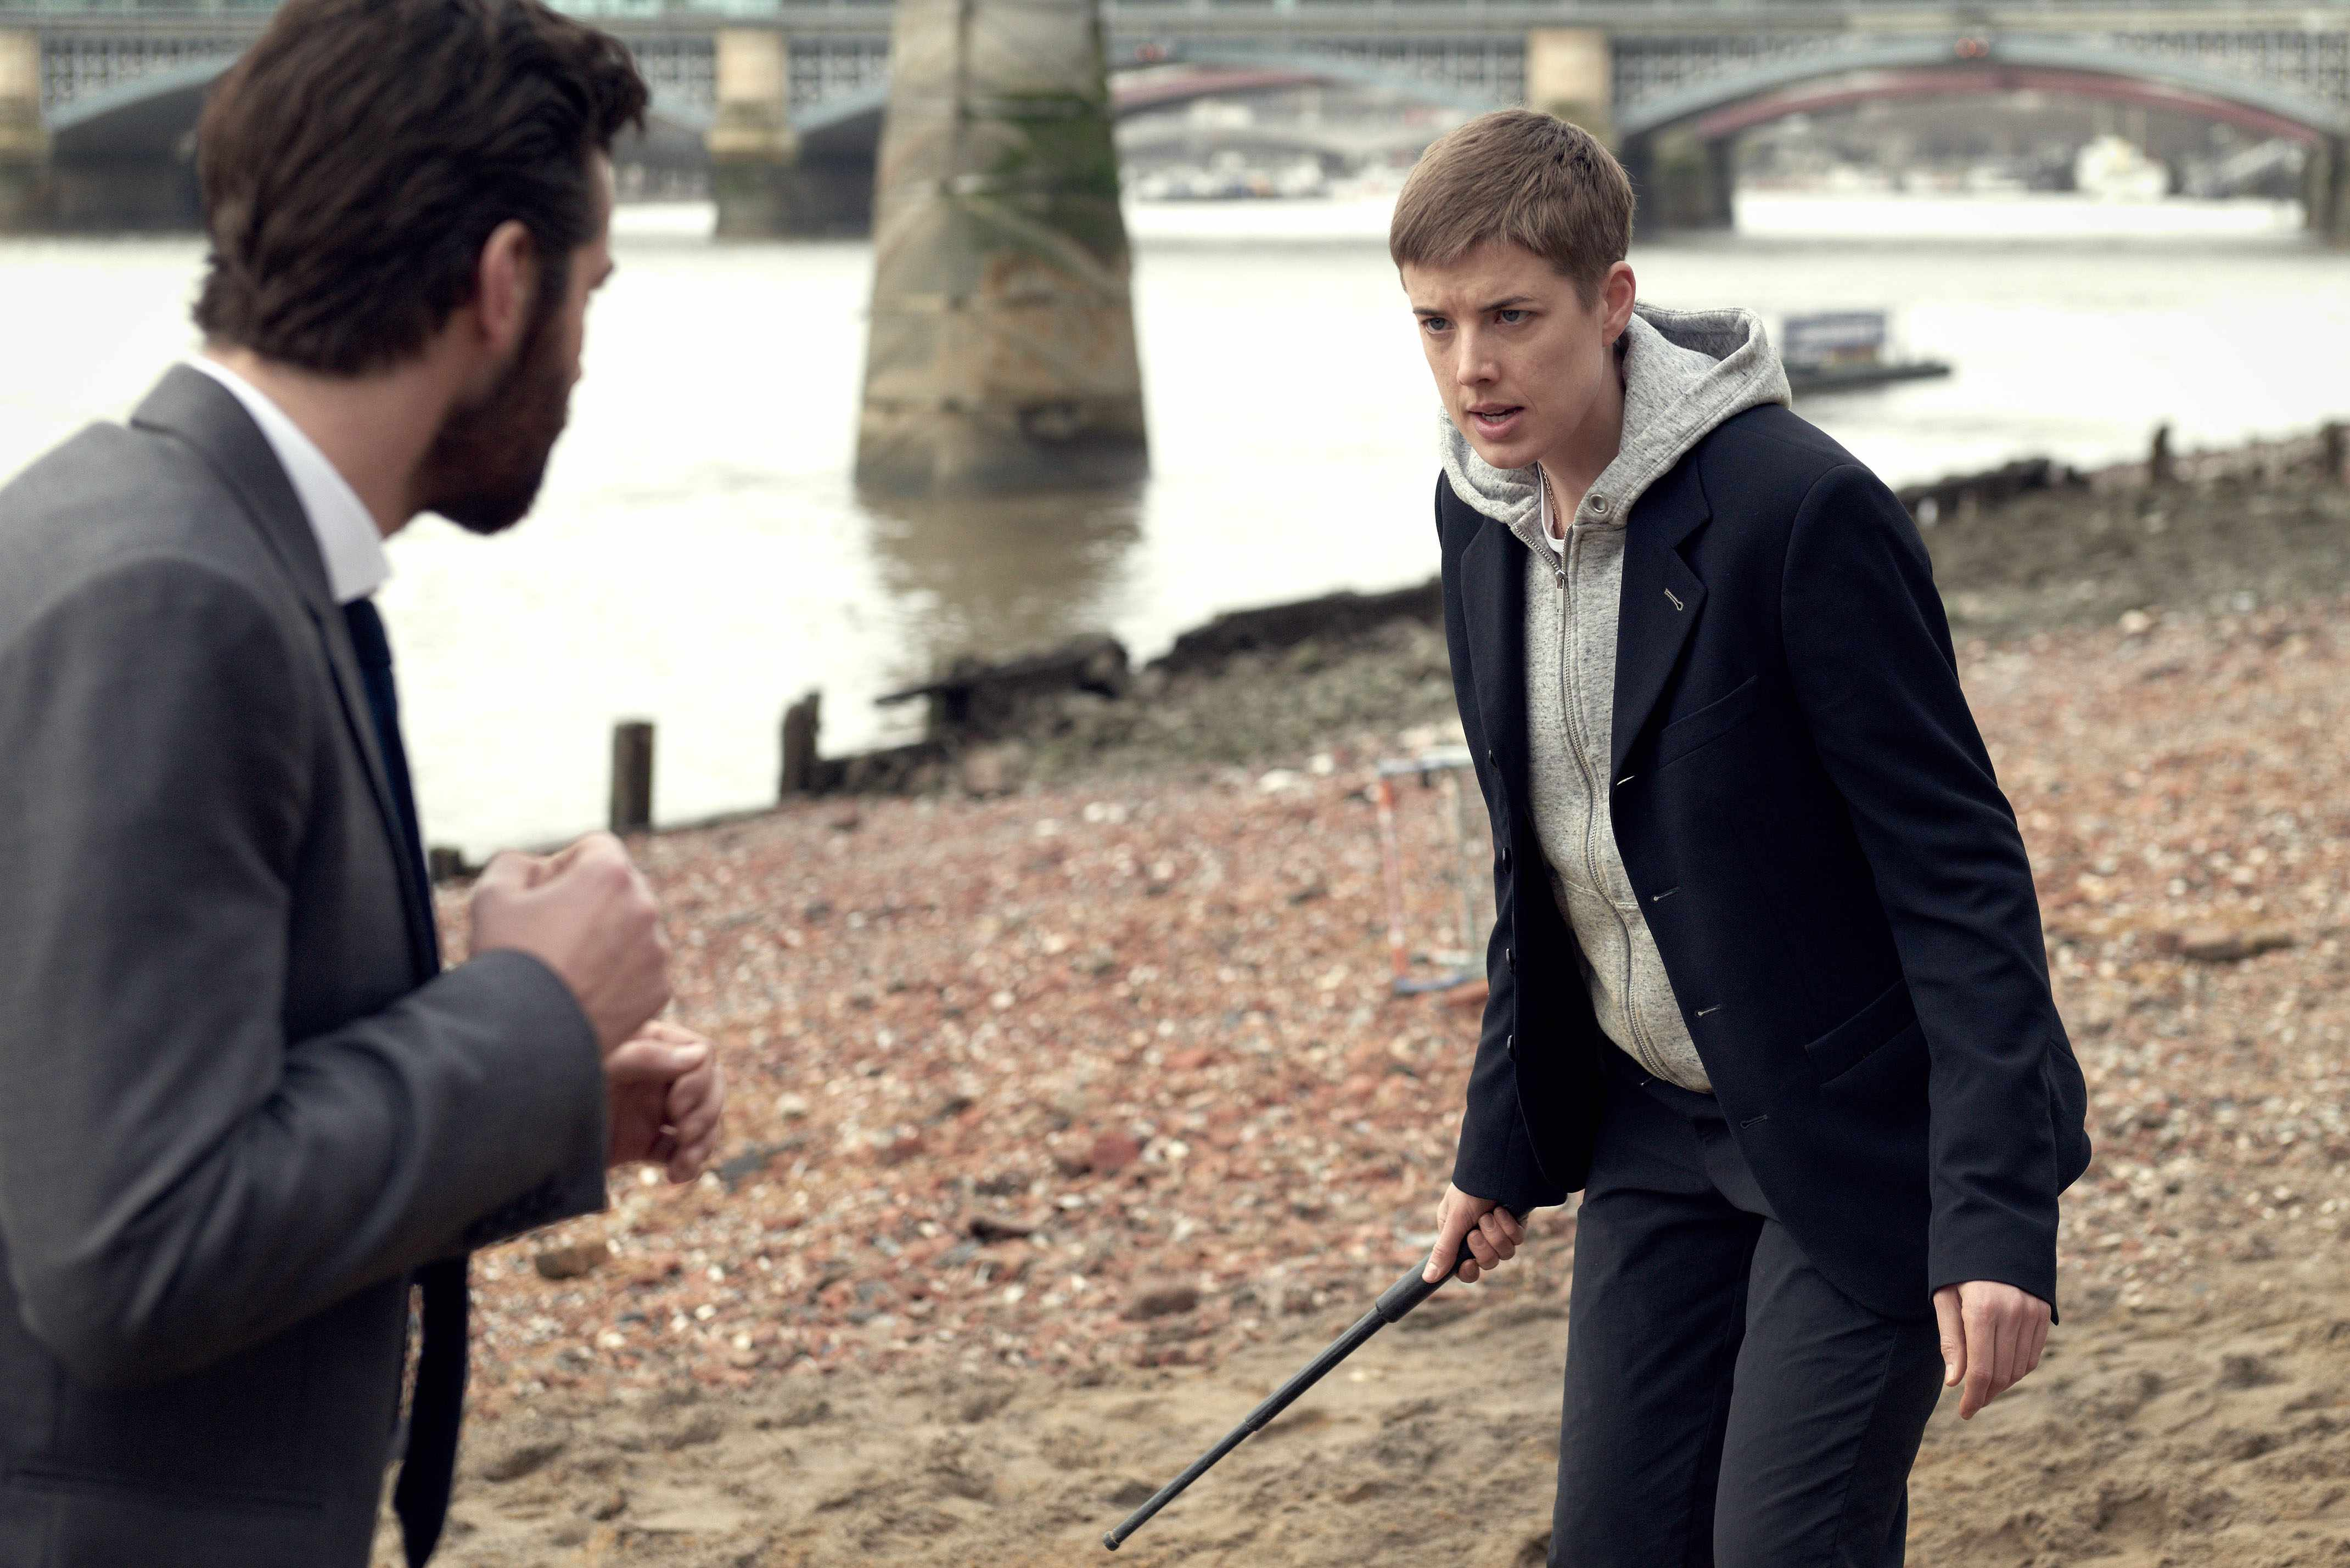 WARNING: Embargoed for publication until 00:00:01 on 29/12/2017 - Programme Name: Hard Sun - TX: n/a - Episode: n/a (No. 1) - Picture Shows: ***EMBARGOED UNTIL 29th DEC 2017*** Hicks (JIM STURGESS), Renko (AGYNESS DEYN) - (C) Euston Films - Photographer: Hal Shinnie